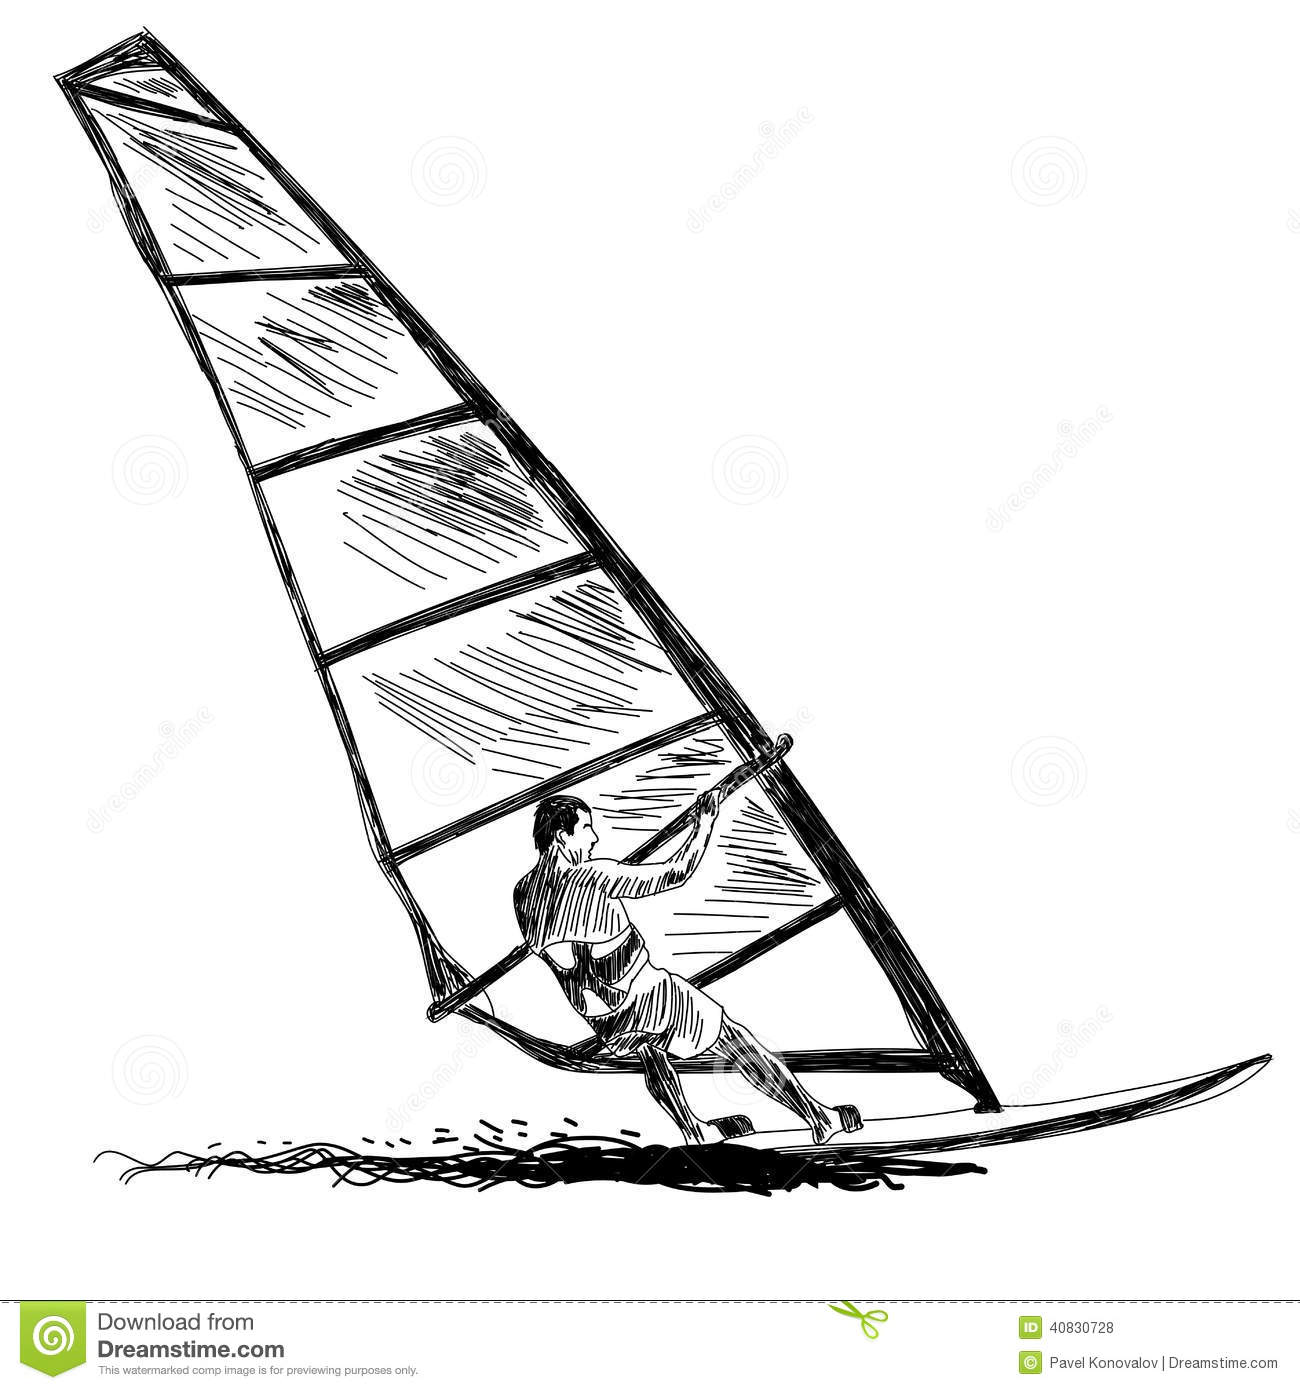 Windsurfing Sketch Vector EPS 10 Illustration Without Transparecy And Meshes Royalty Free Stock Photos